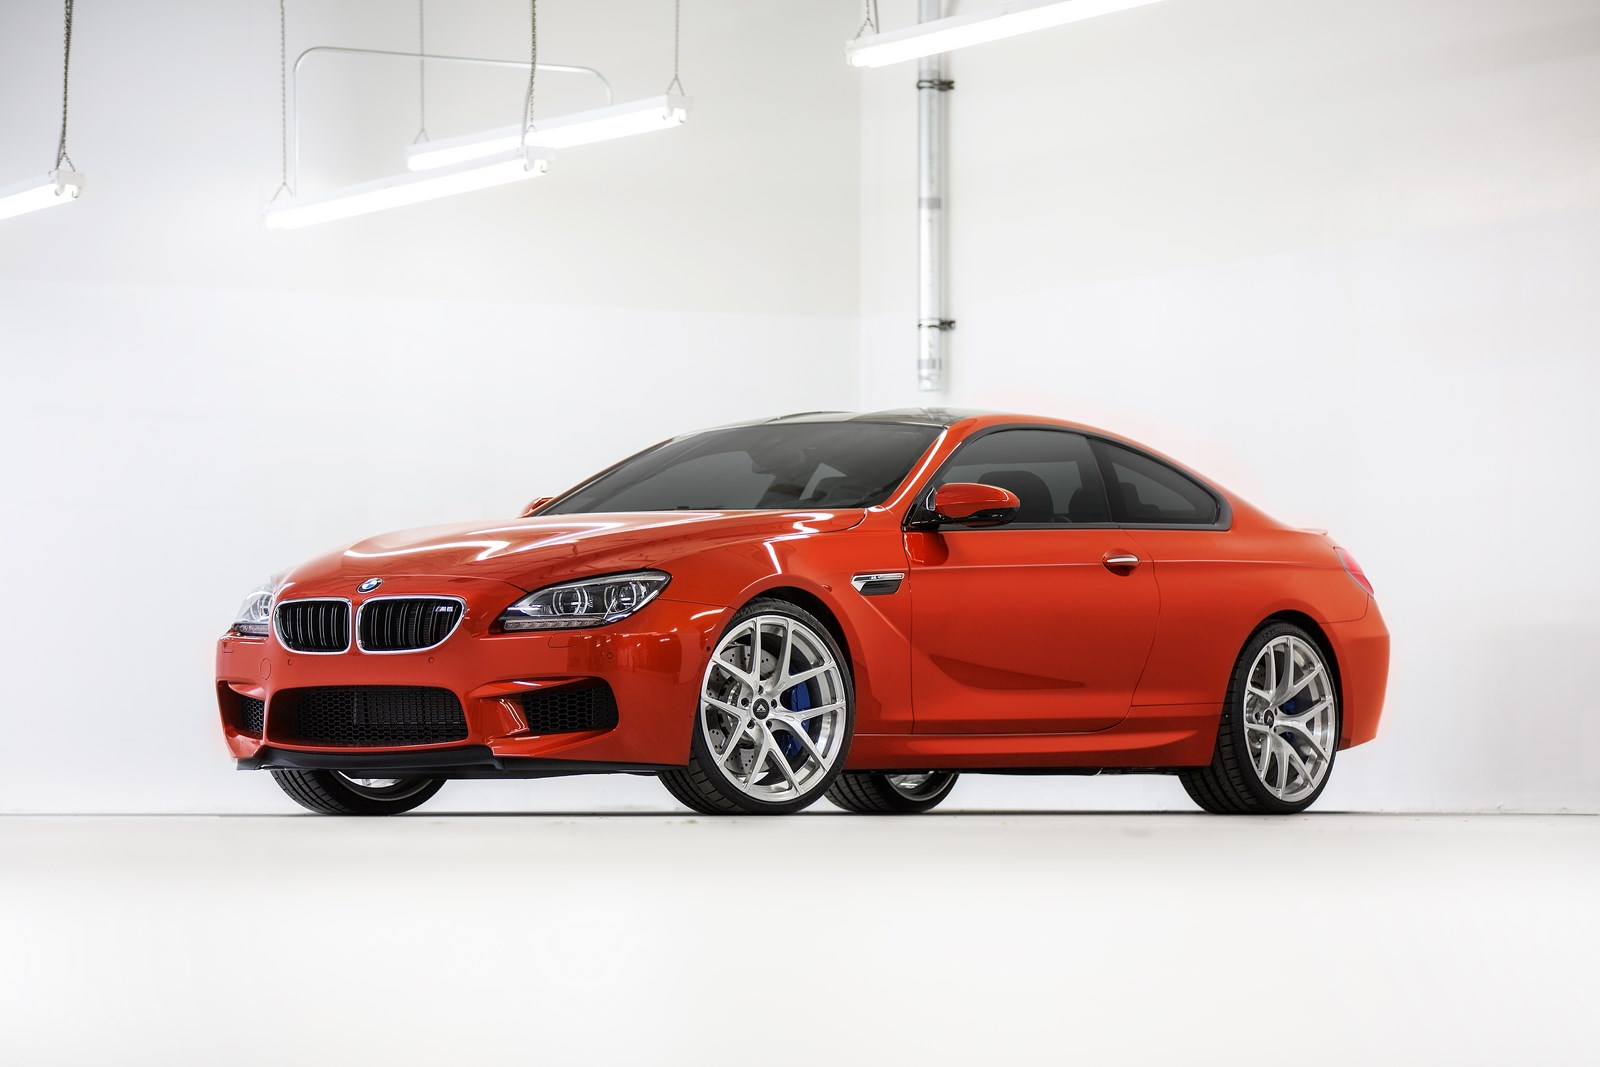 vorsteiner wheels bmw m6 coupe 02